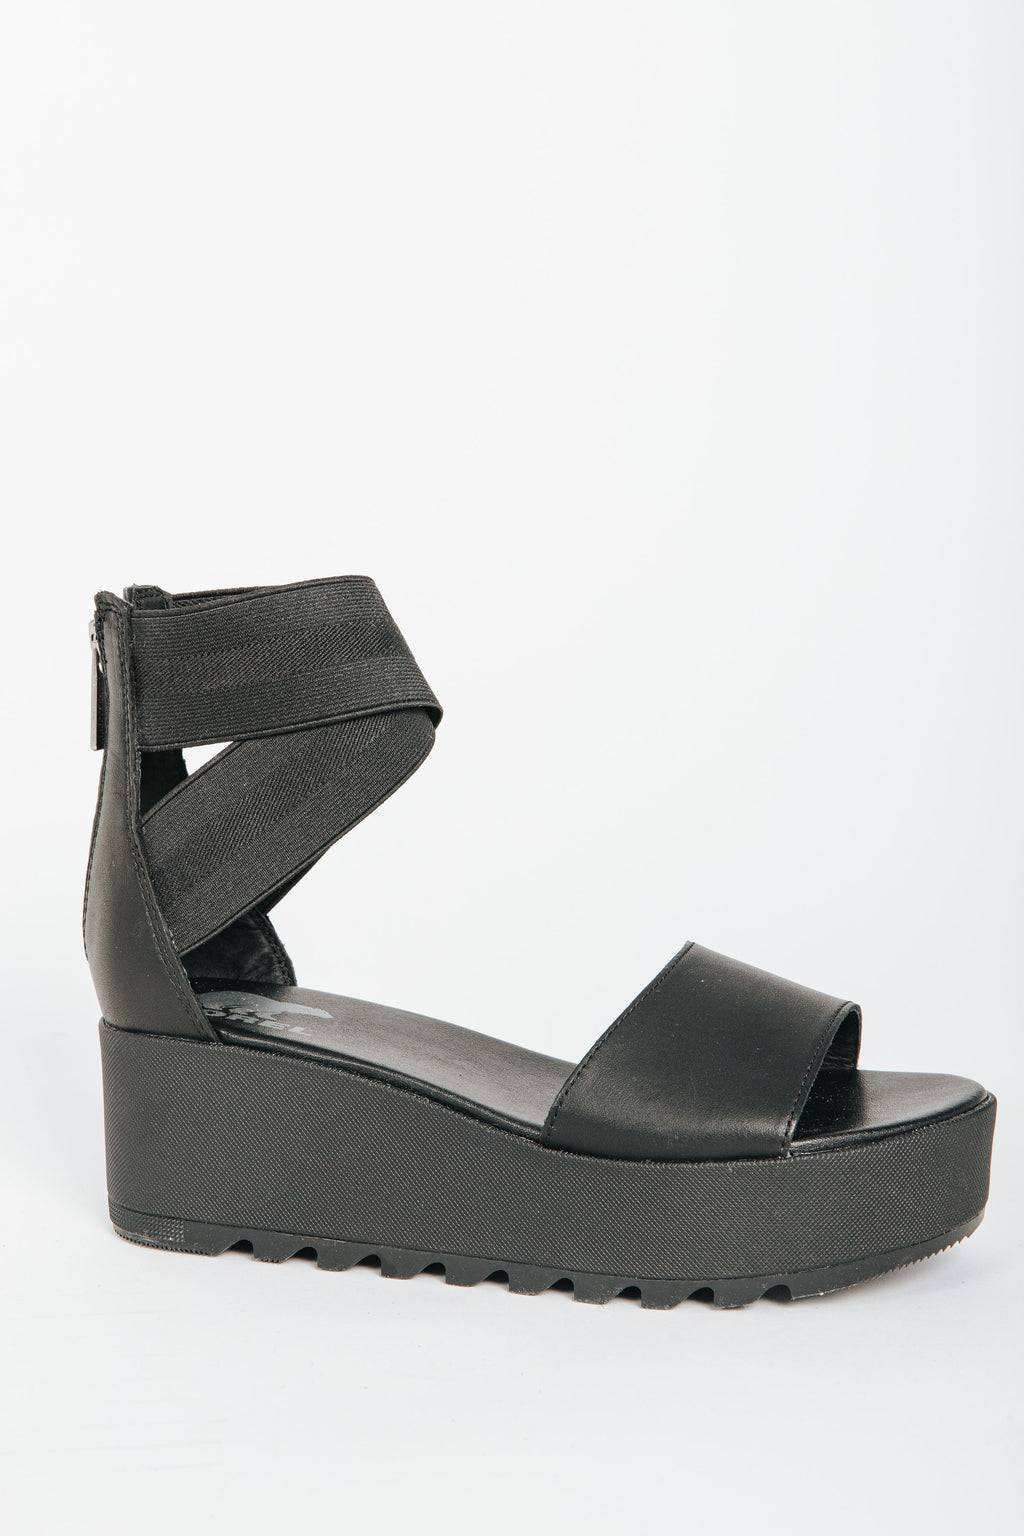 SOREL: Cameron Flatform Ankle Strap Wedge Sandal in Black, studio shoot; side view